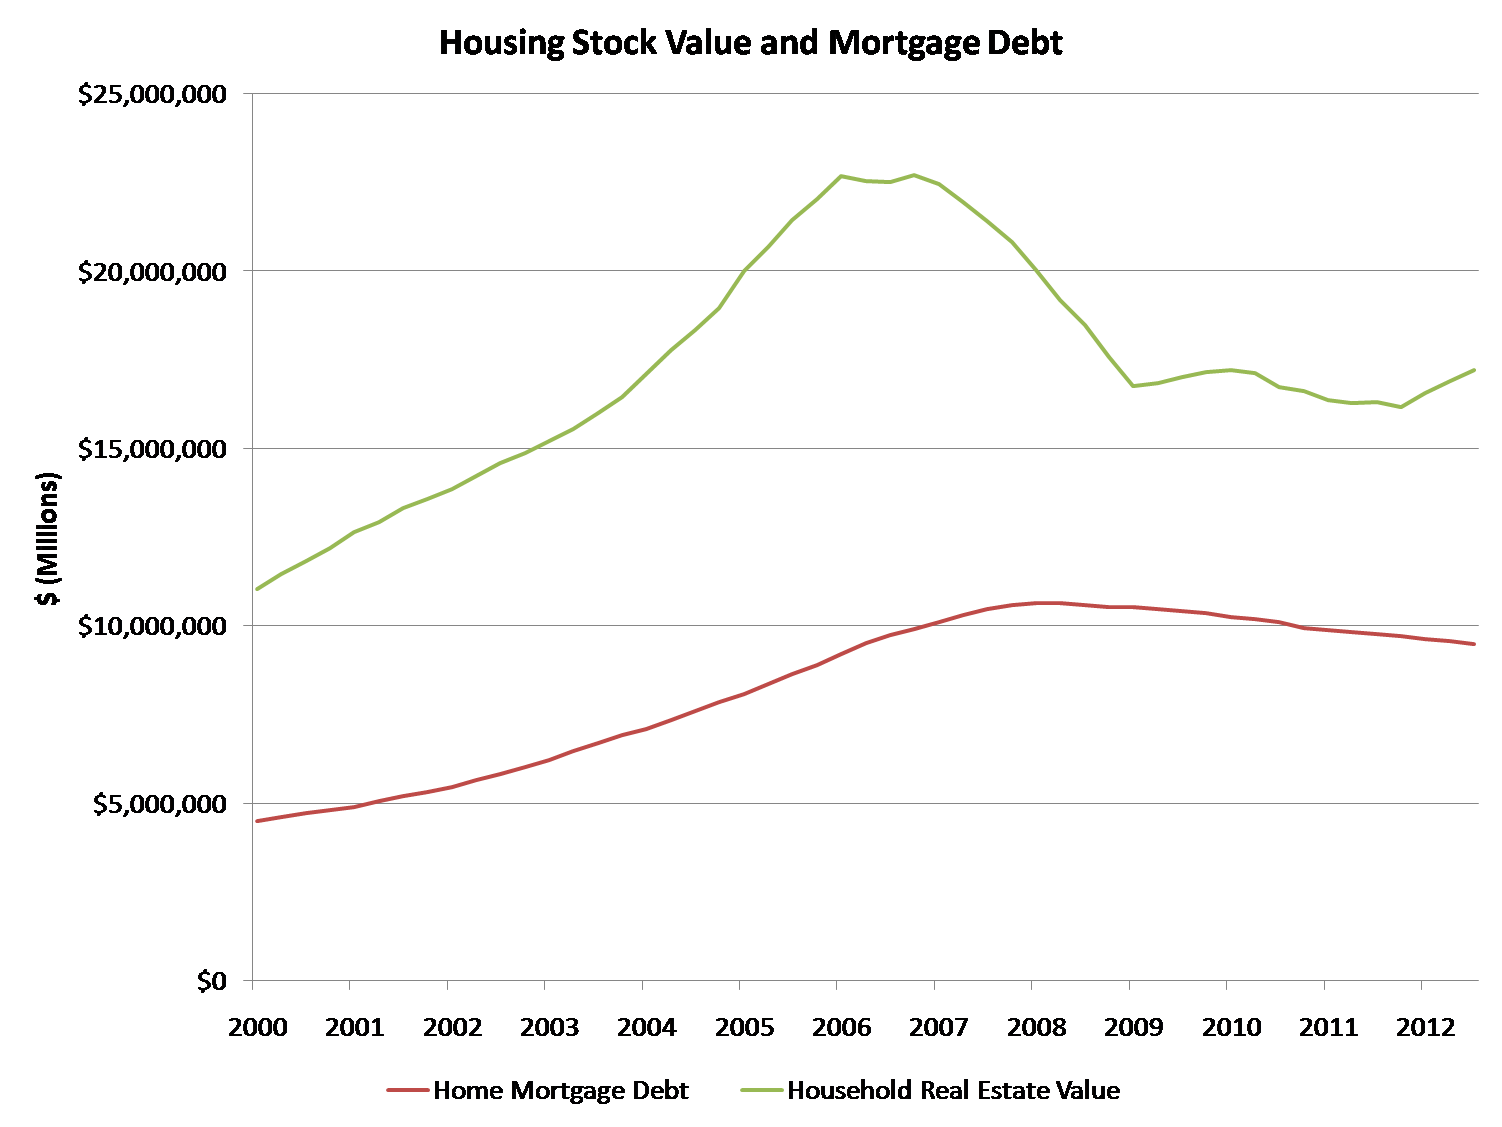 Debt and house value